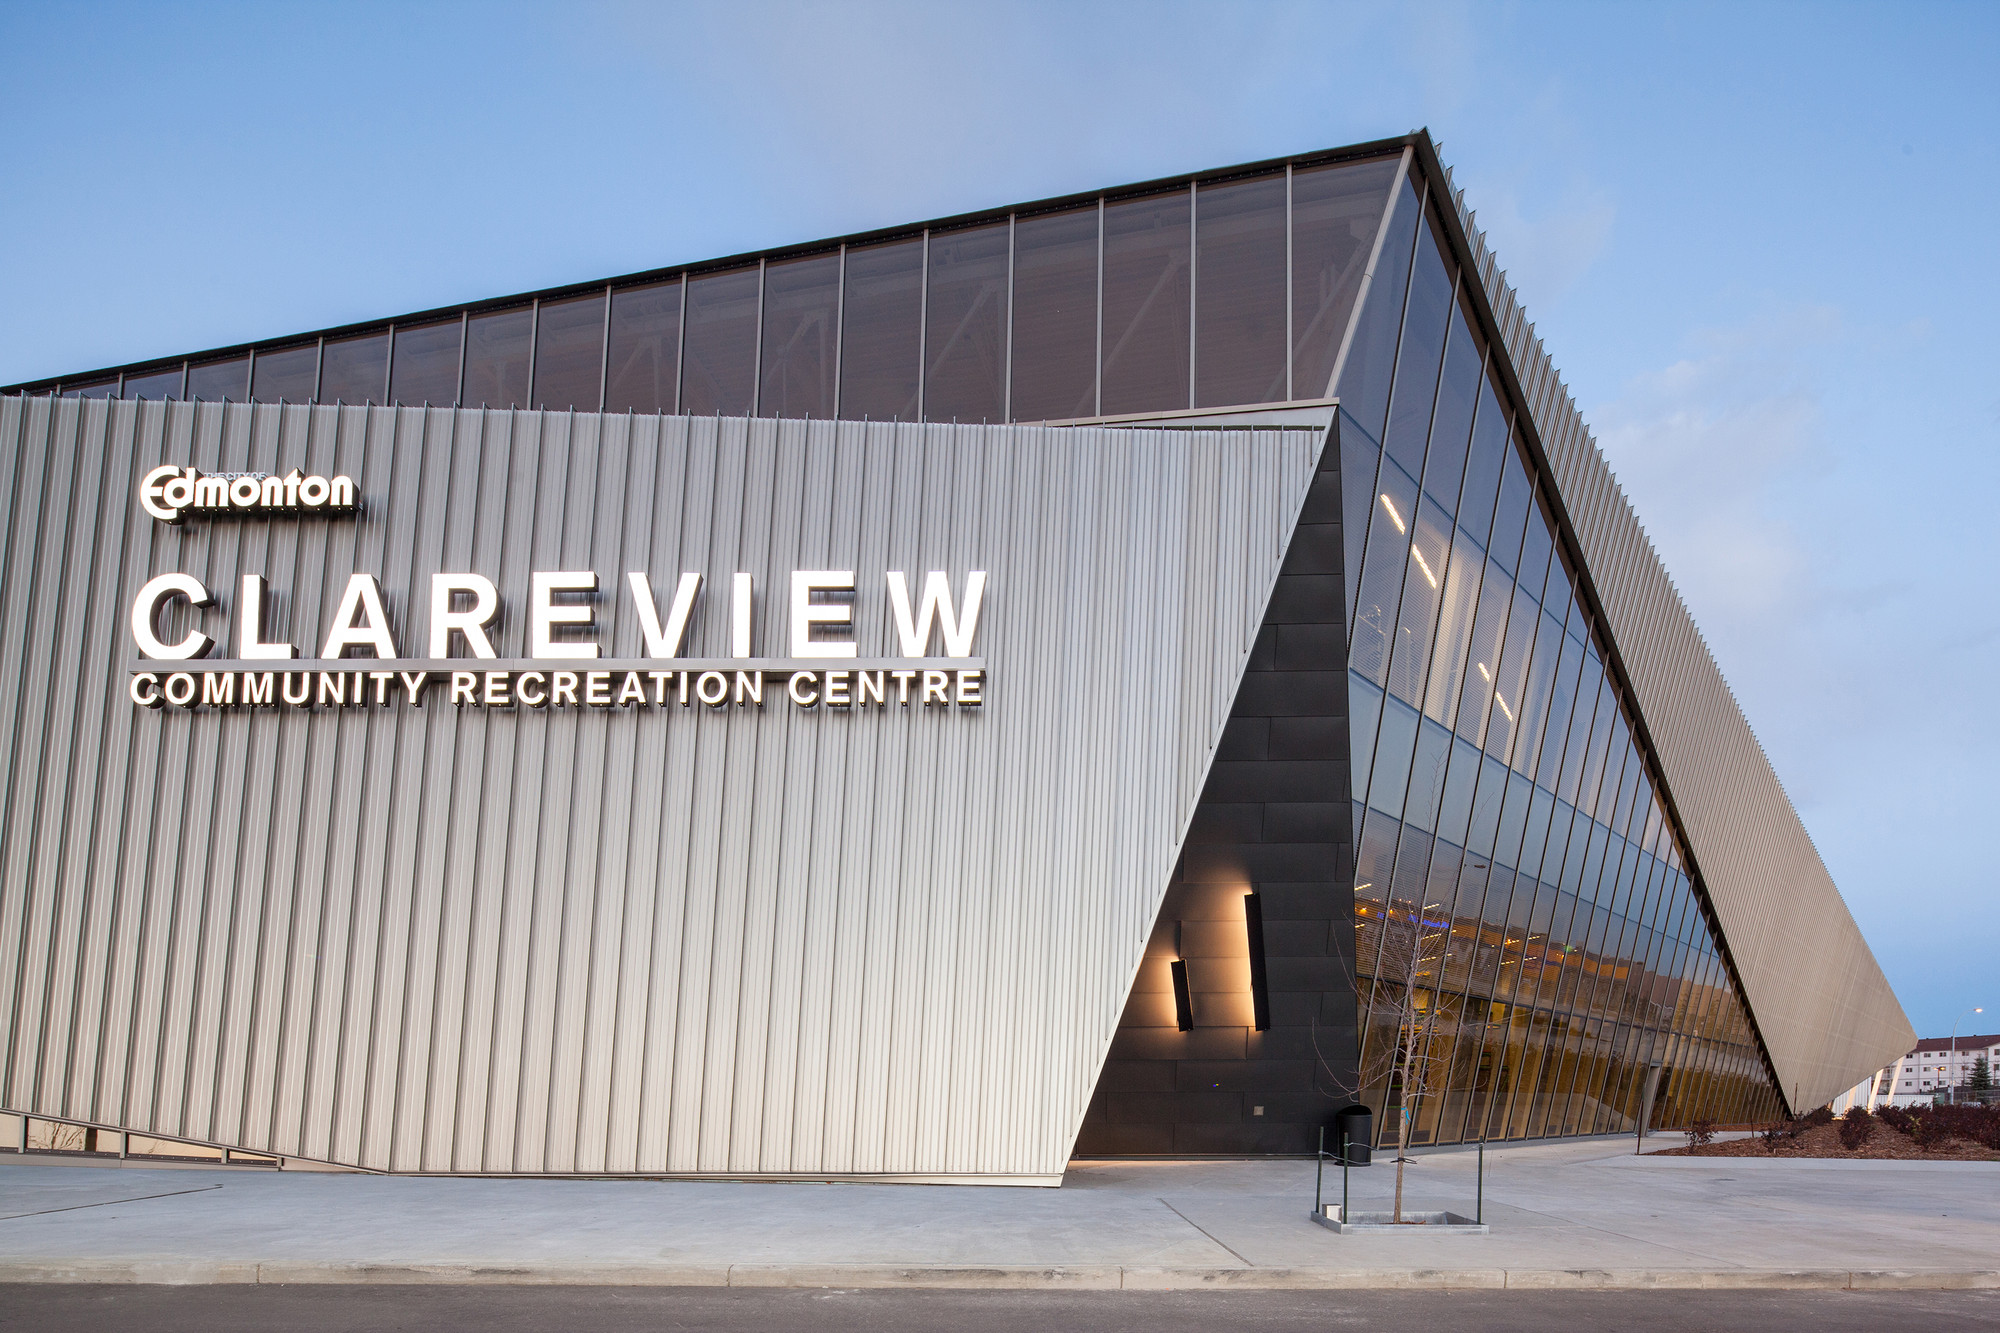 Clareview Community Recreation Centre / Teeple Architects, © Scott Norsworthy